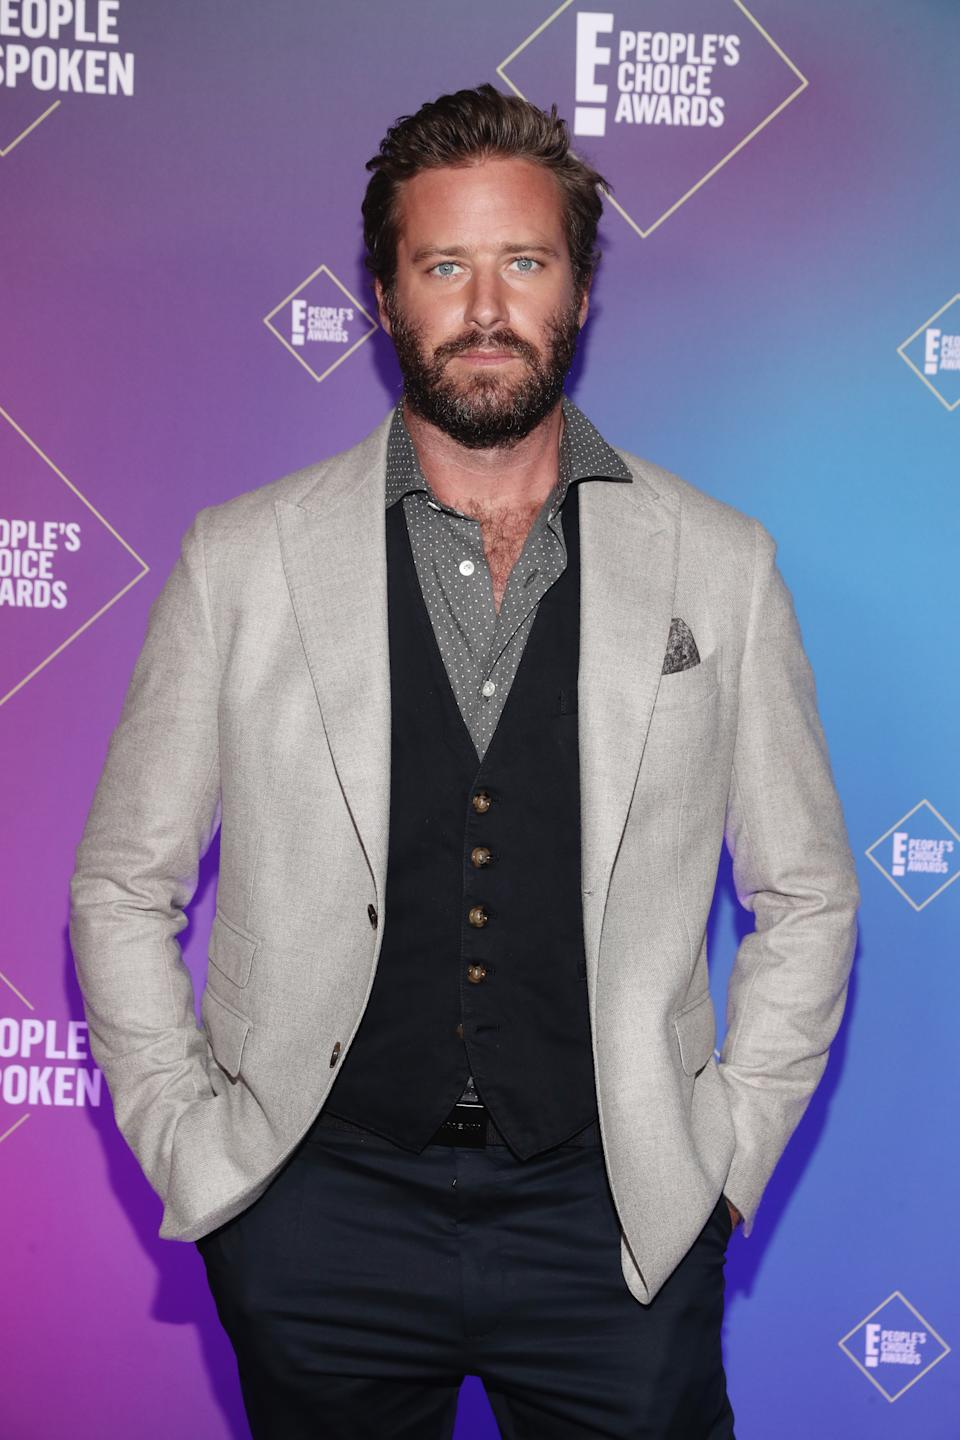 SANTA MONICA, CALIFORNIA - NOVEMBER 15: 2020 E! PEOPLE'S CHOICE AWARDS -- In this image released on November 15, Armie Hammer attends the 2020 E! People's Choice Awards held at the Barker Hangar in Santa Monica, California and on broadcast on Sunday, November 15, 2020. (Photo by Todd Williamson/E! Entertainment/NBCU Photo Bank via Getty Images)